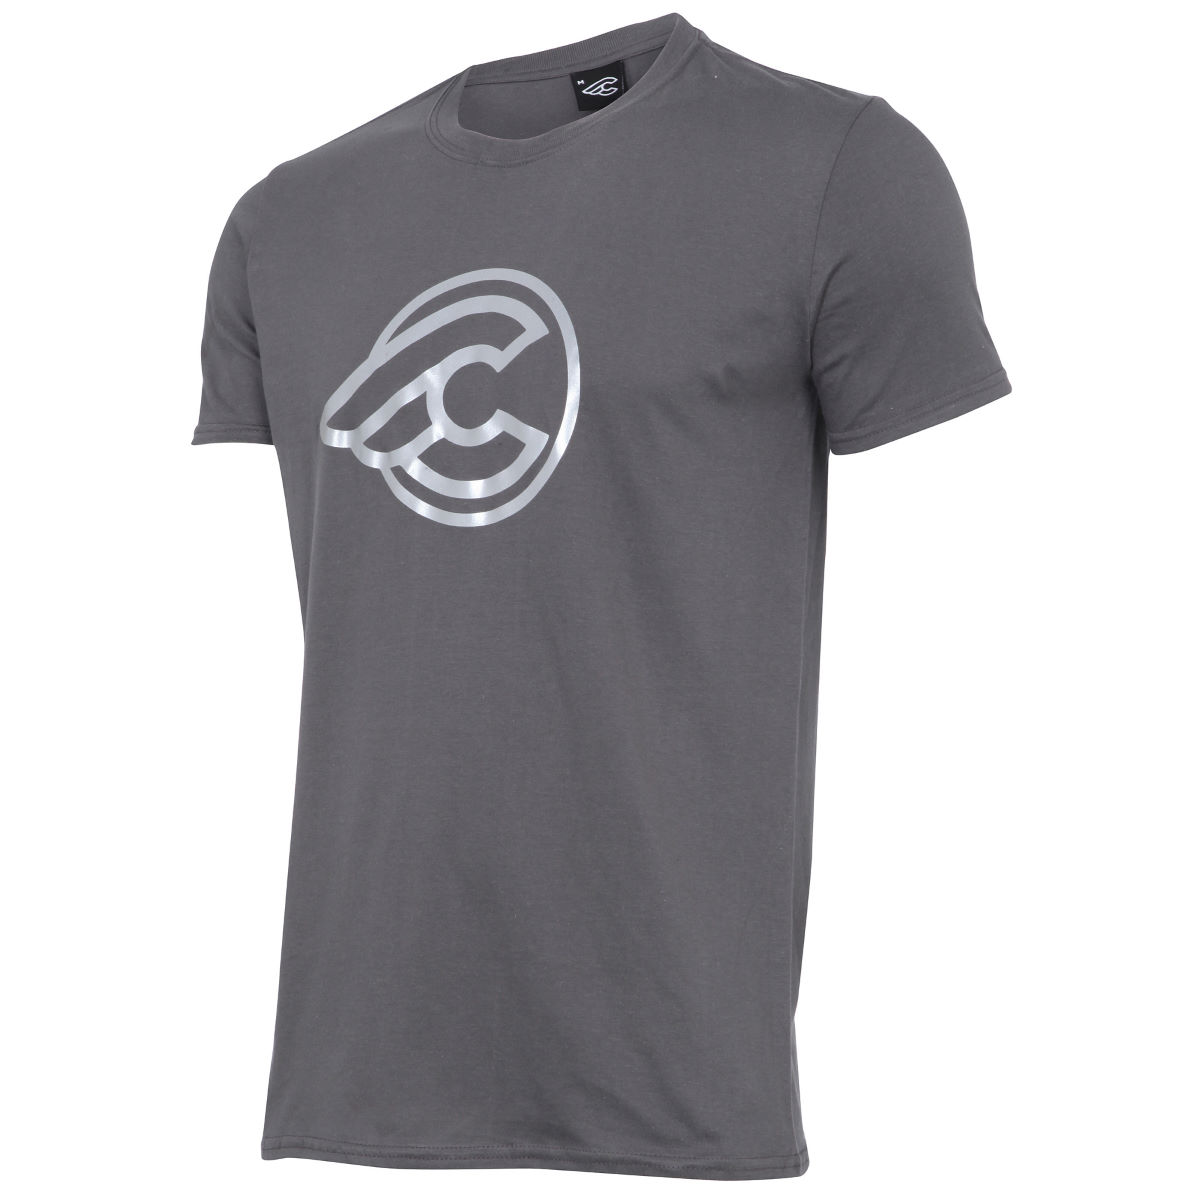 T-shirt Cinelli Winged Reflective - S Gris T-shirts